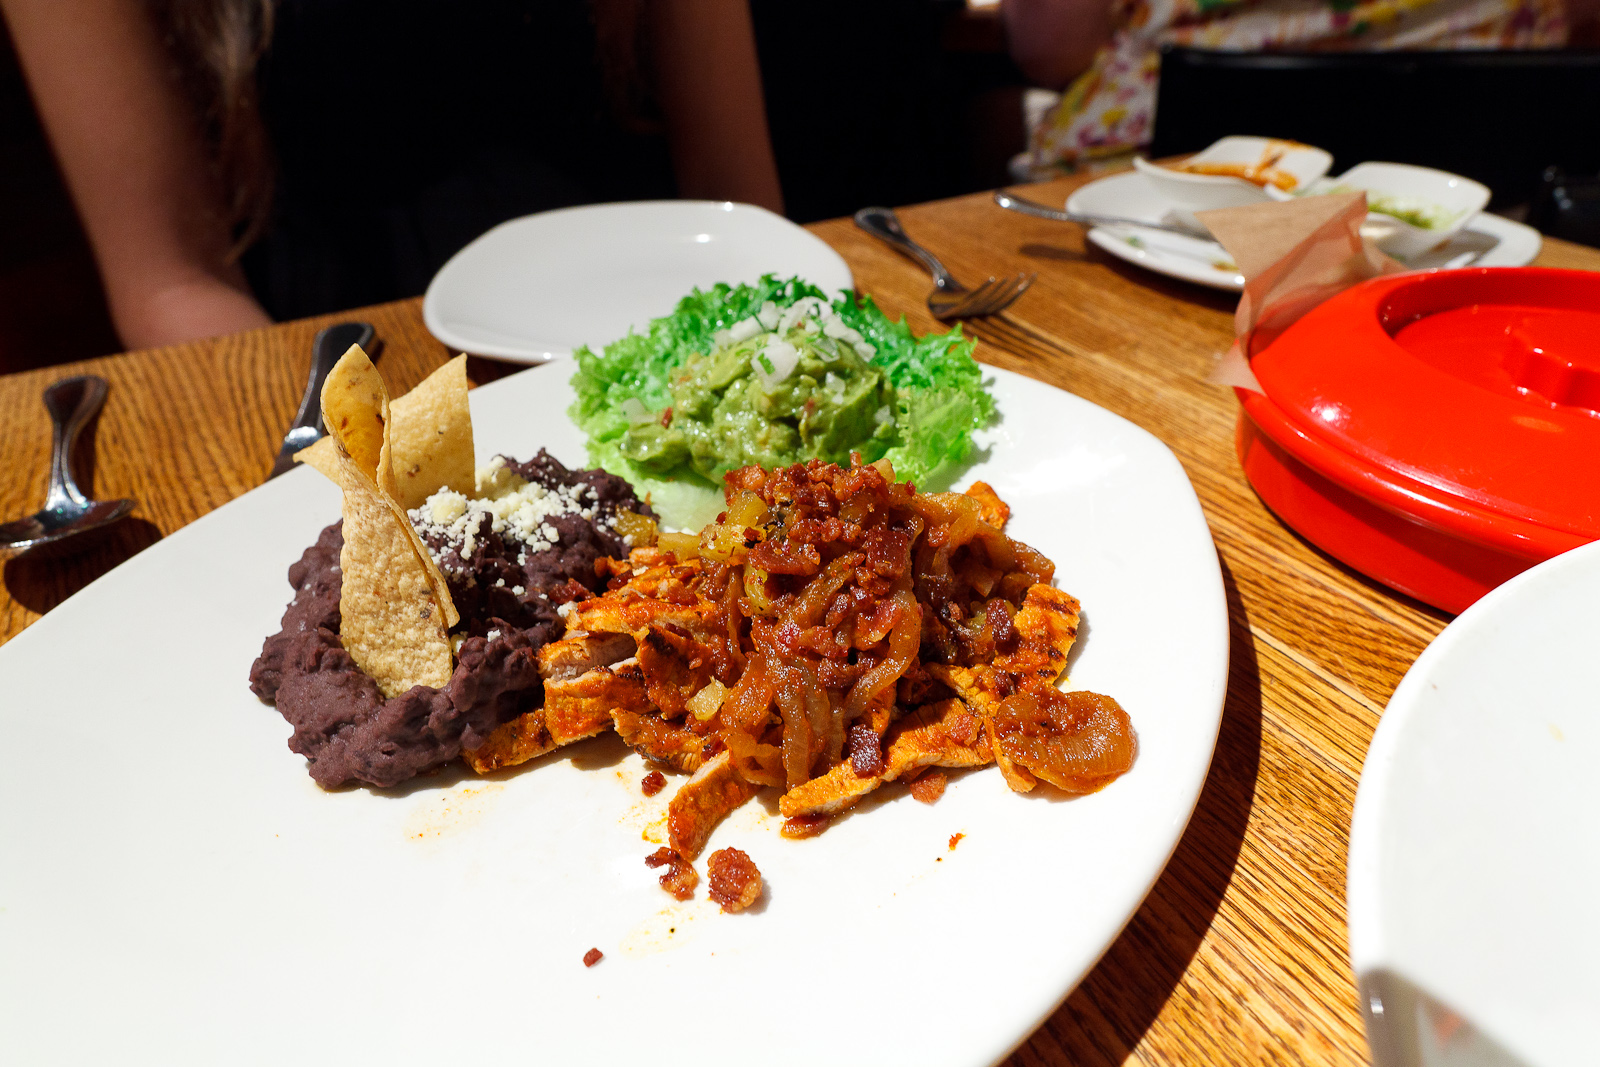 Tacos al pastor, wood-grilled meat sliced and served with two salsas, frijoles charros, guacamole, and homemade tortillas ($18)